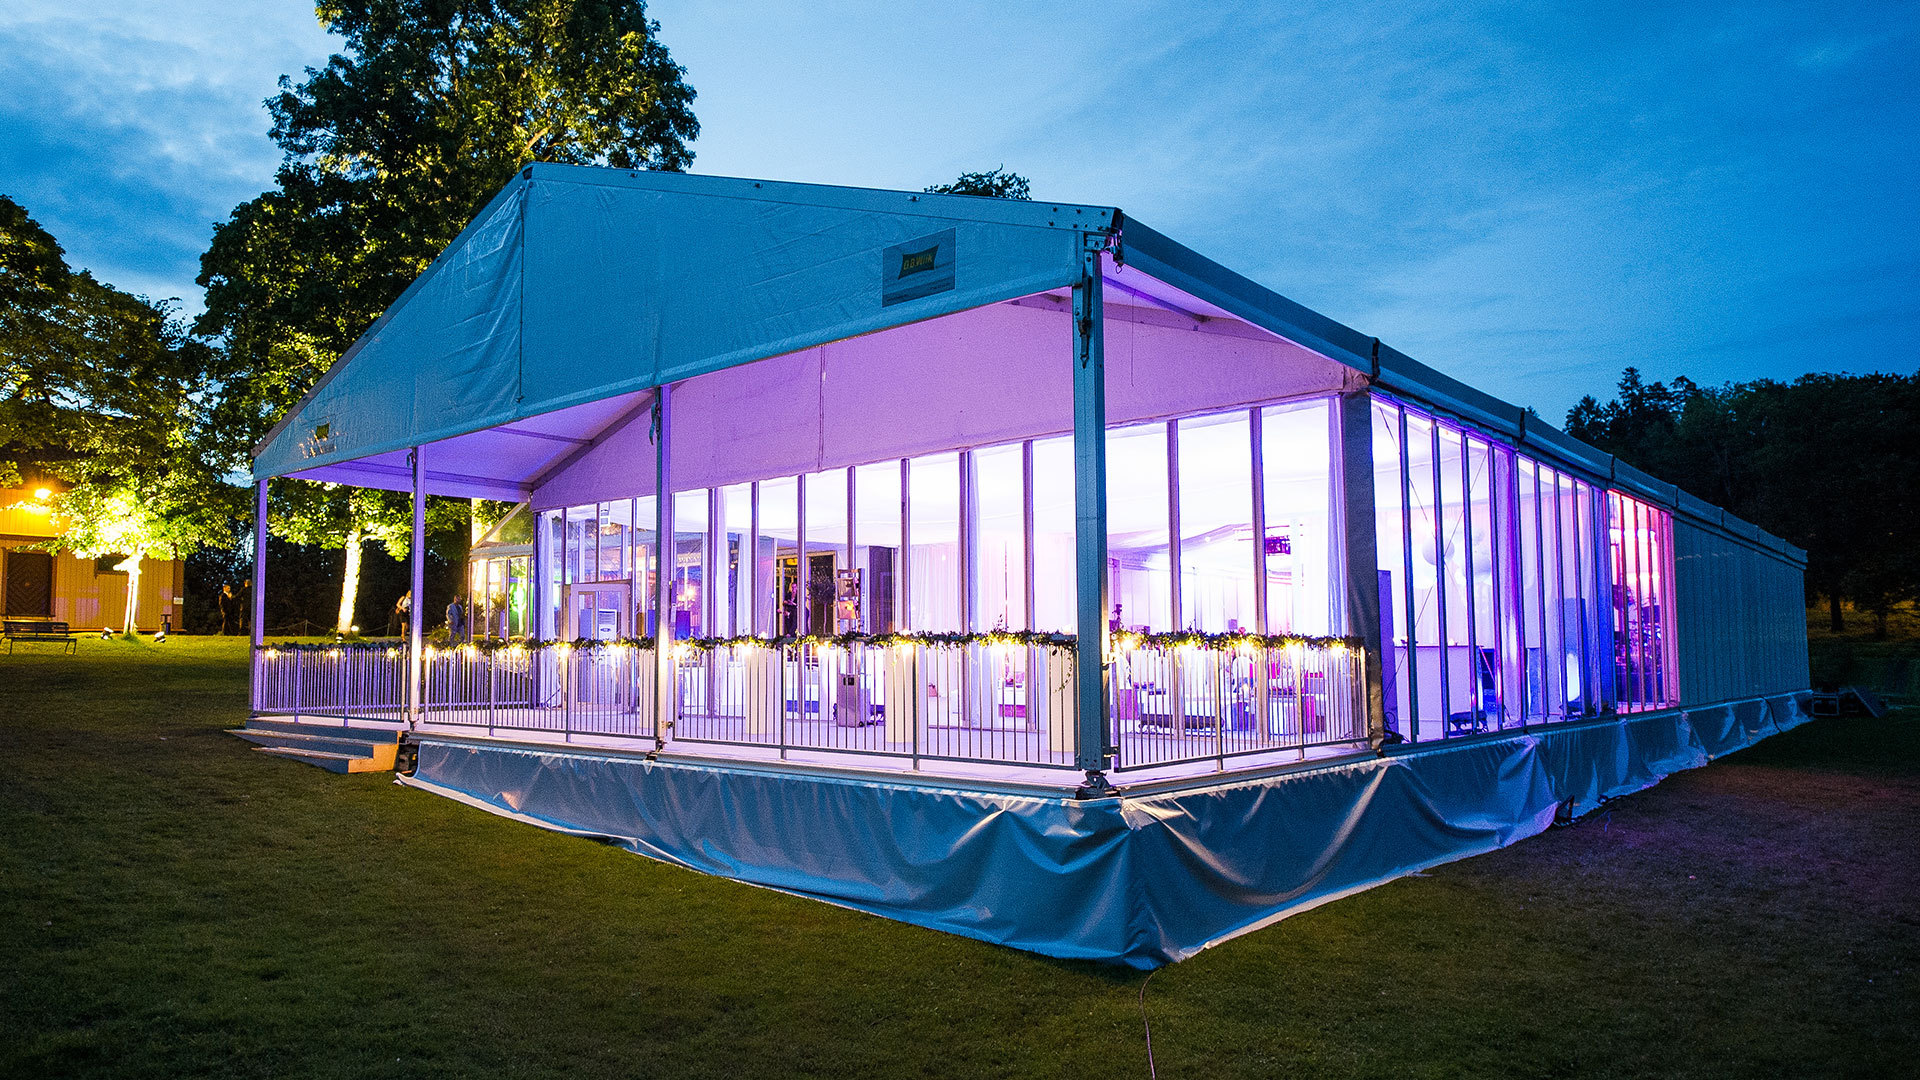 Large Commercial Tents: How to Clean Them